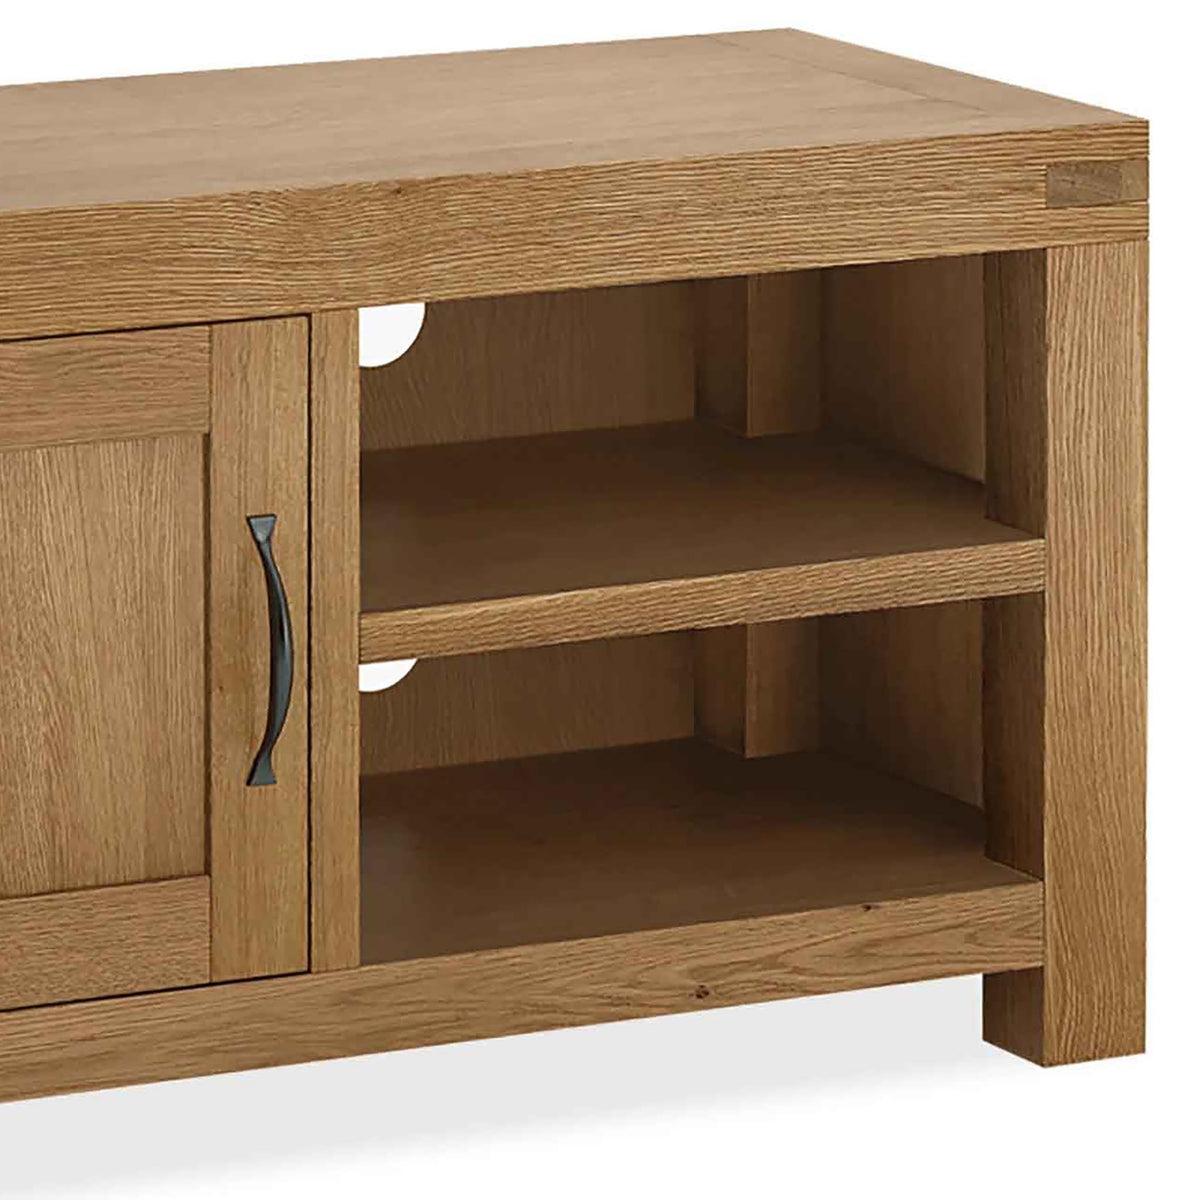 The Abbey Grande 90cm Oak Small TV Stand - Close Up of Shelving